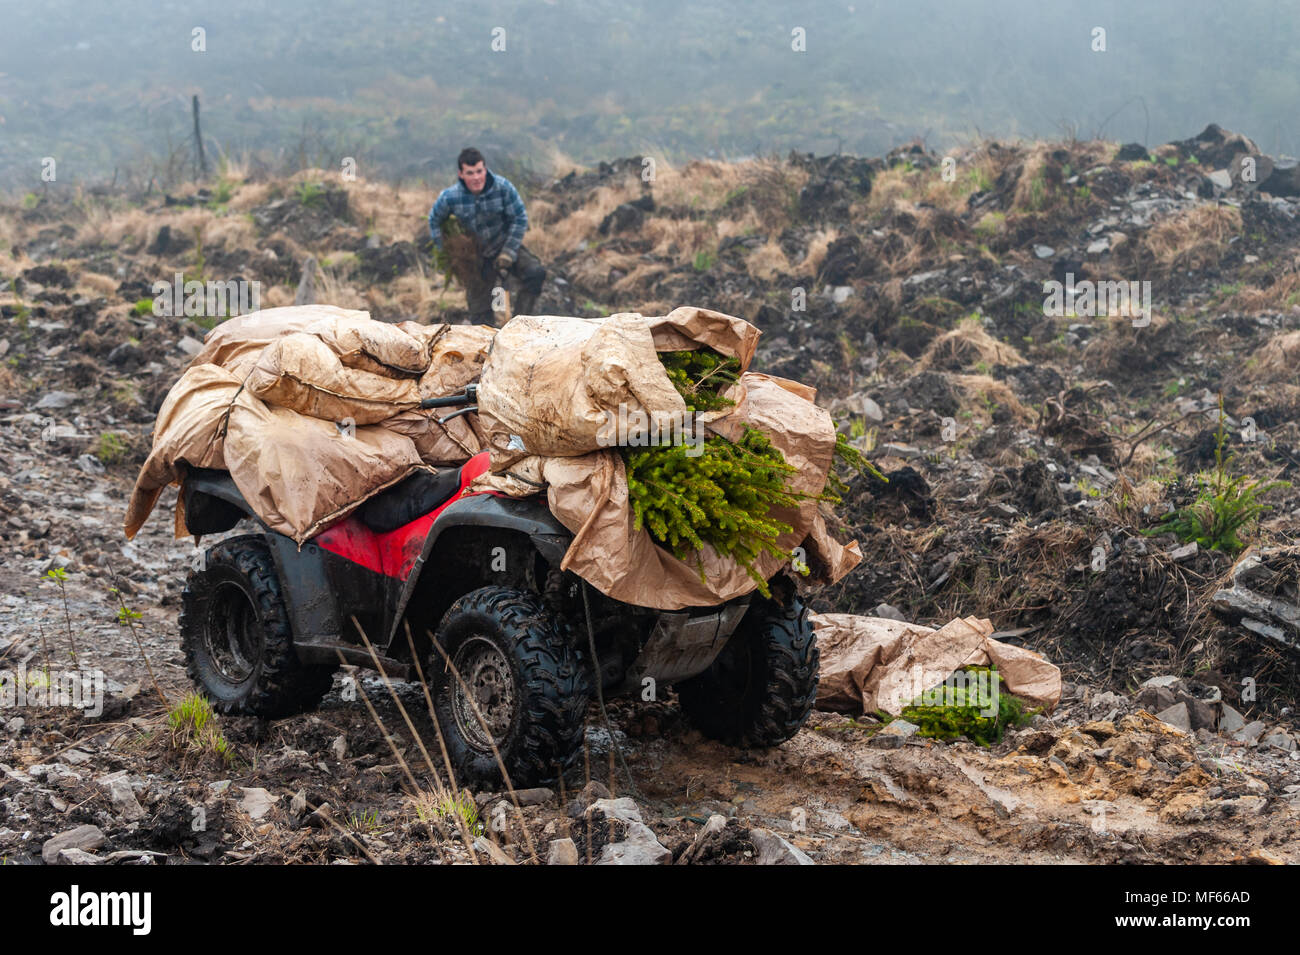 Coilte sub-contractor plants trees in a forest in Ballydehob, Ireland with a quad bike loaded with saplings in the foreground. - Stock Image